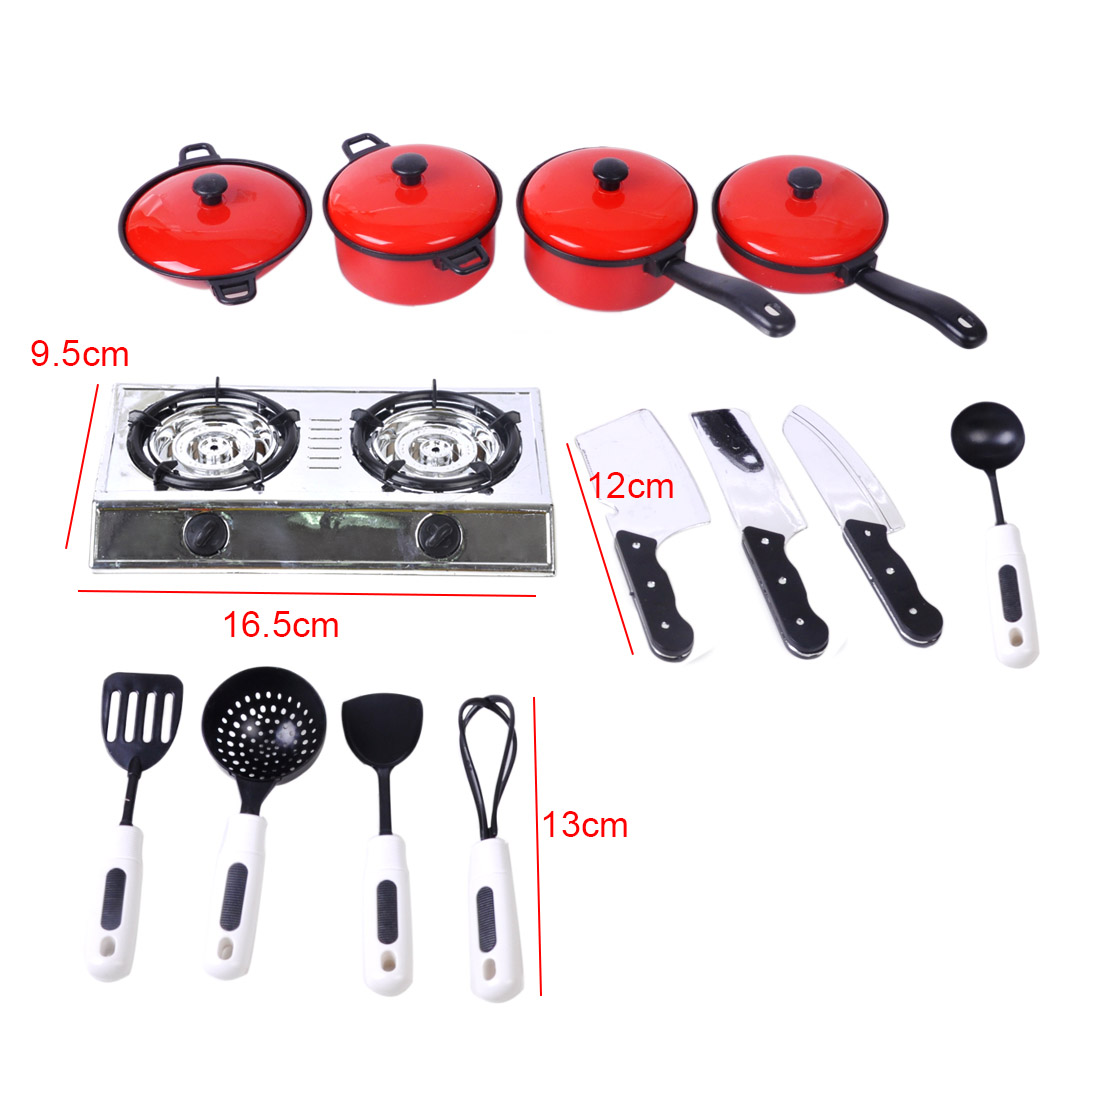 13pcs Kids Play Toy Kitchen Utensils Pots Pans Cooking Food Dishes Cookware Toy Ebay